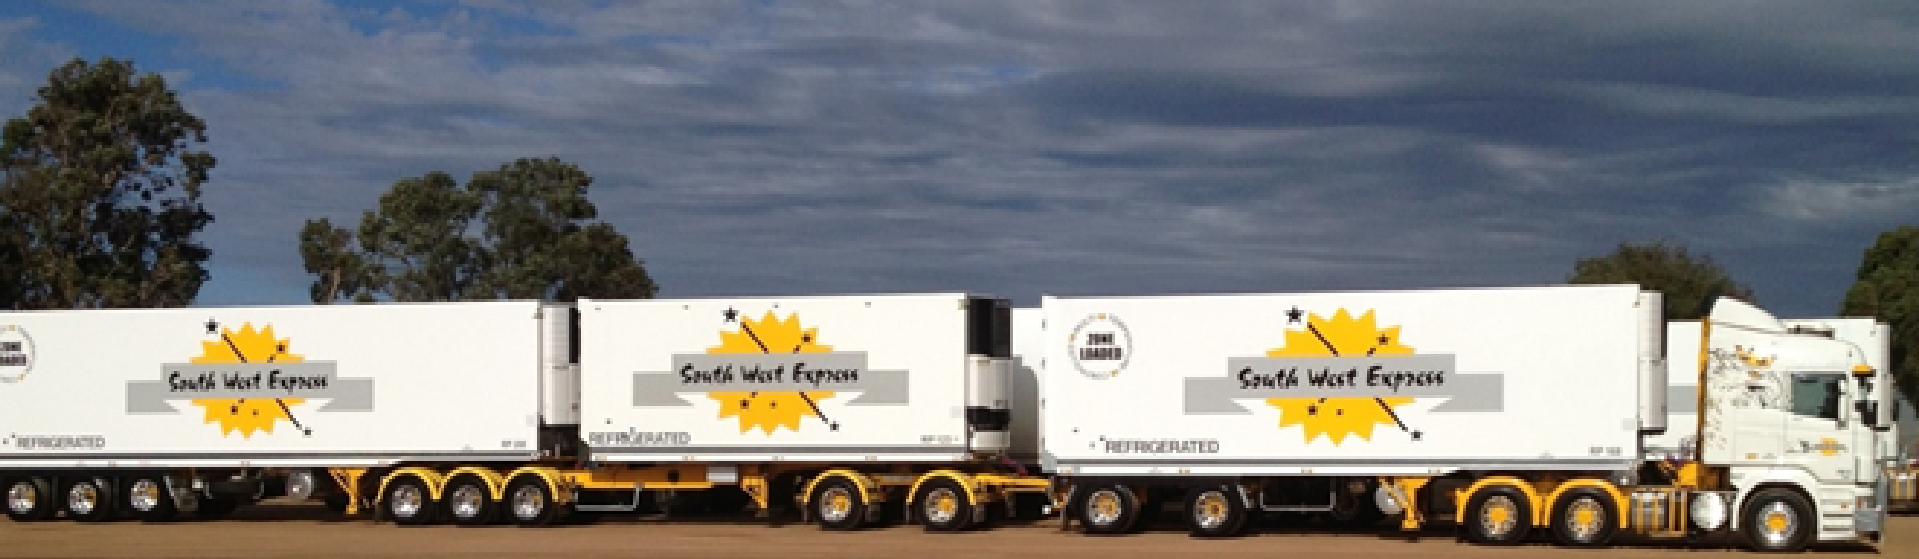 South west Express food road train